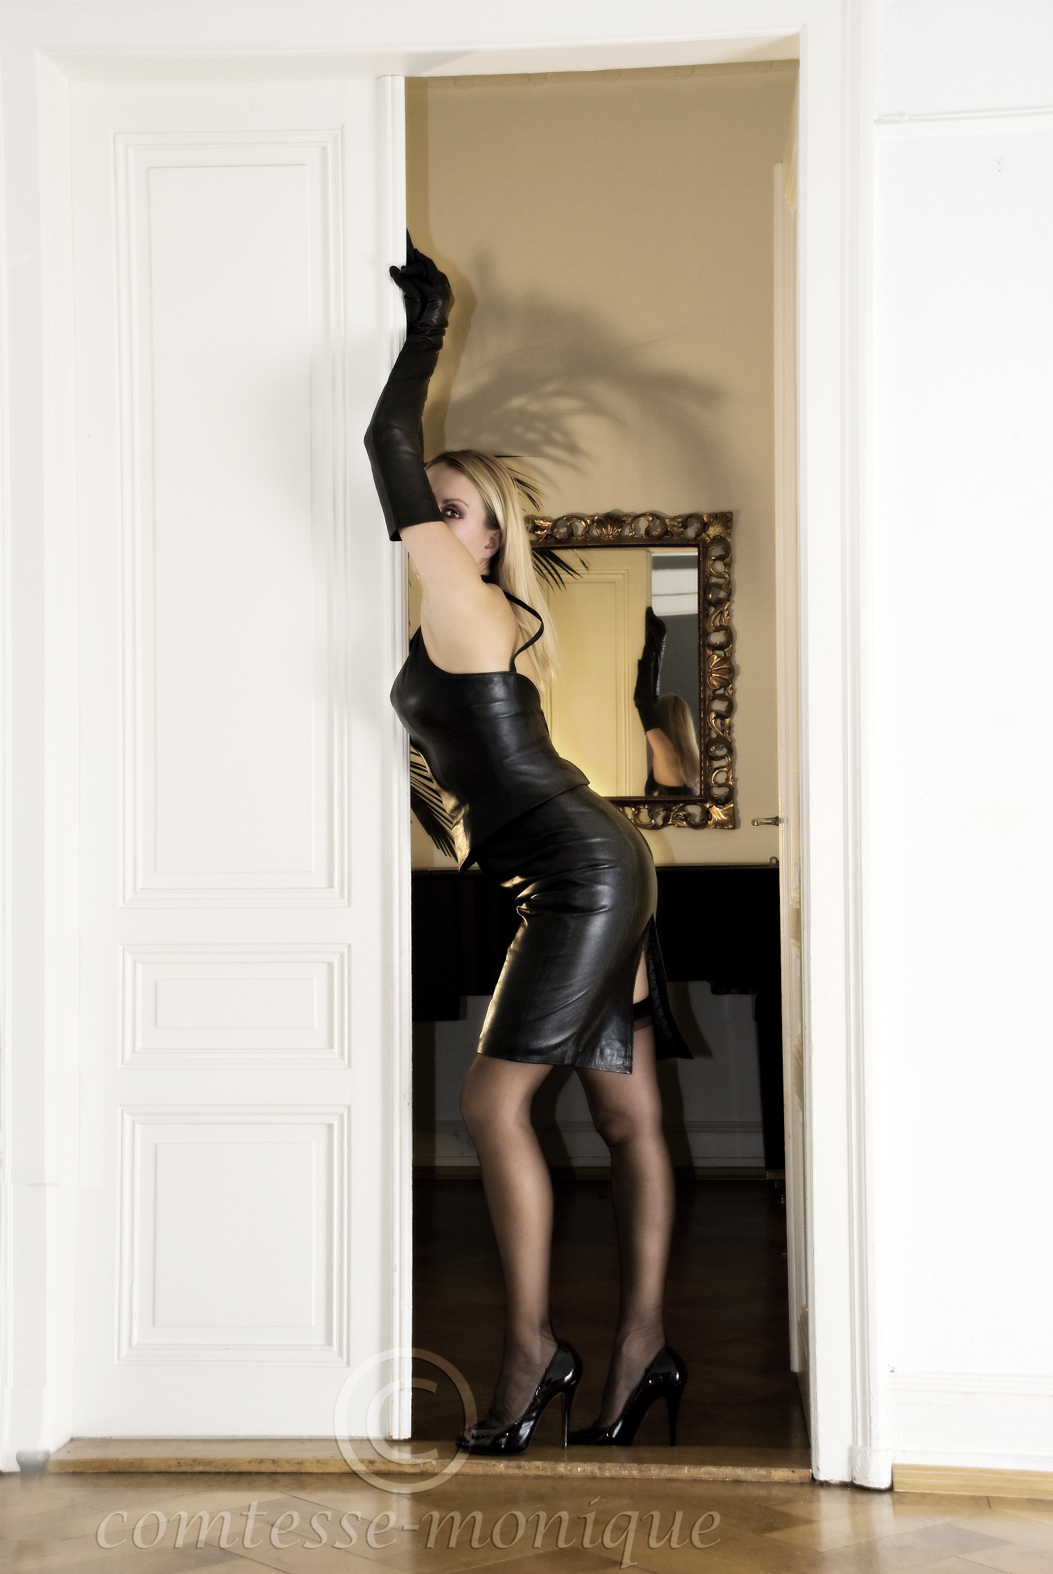 Comtesse Monique http://www.leatherleatherleather.com/2012/02/comtesse-monique-leather-2-hq.html